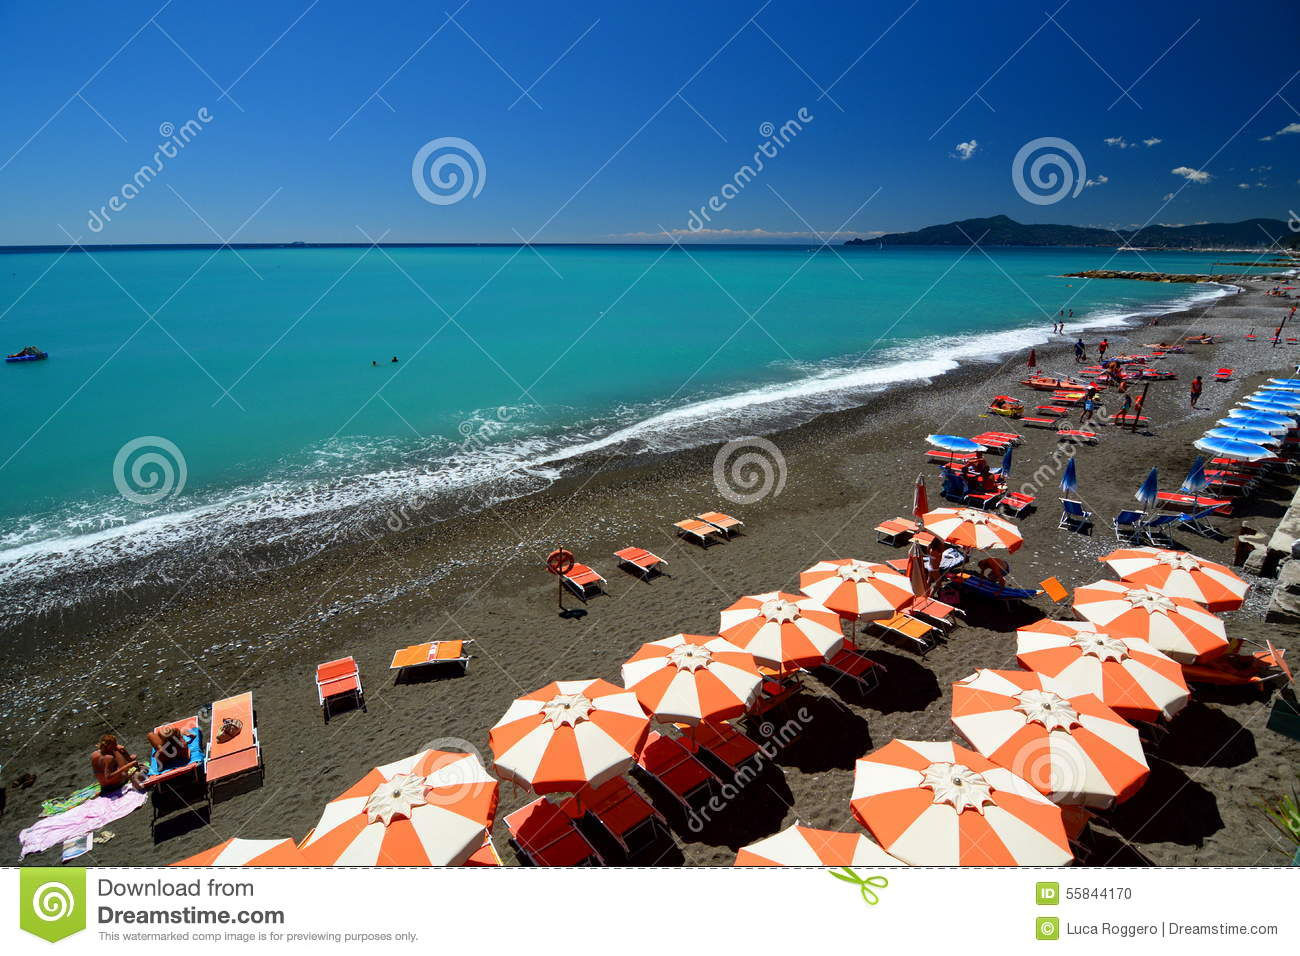 Black chiavari chairs - Lavagna Is A Tourist Port City In The Curving Stretch Of The Italian